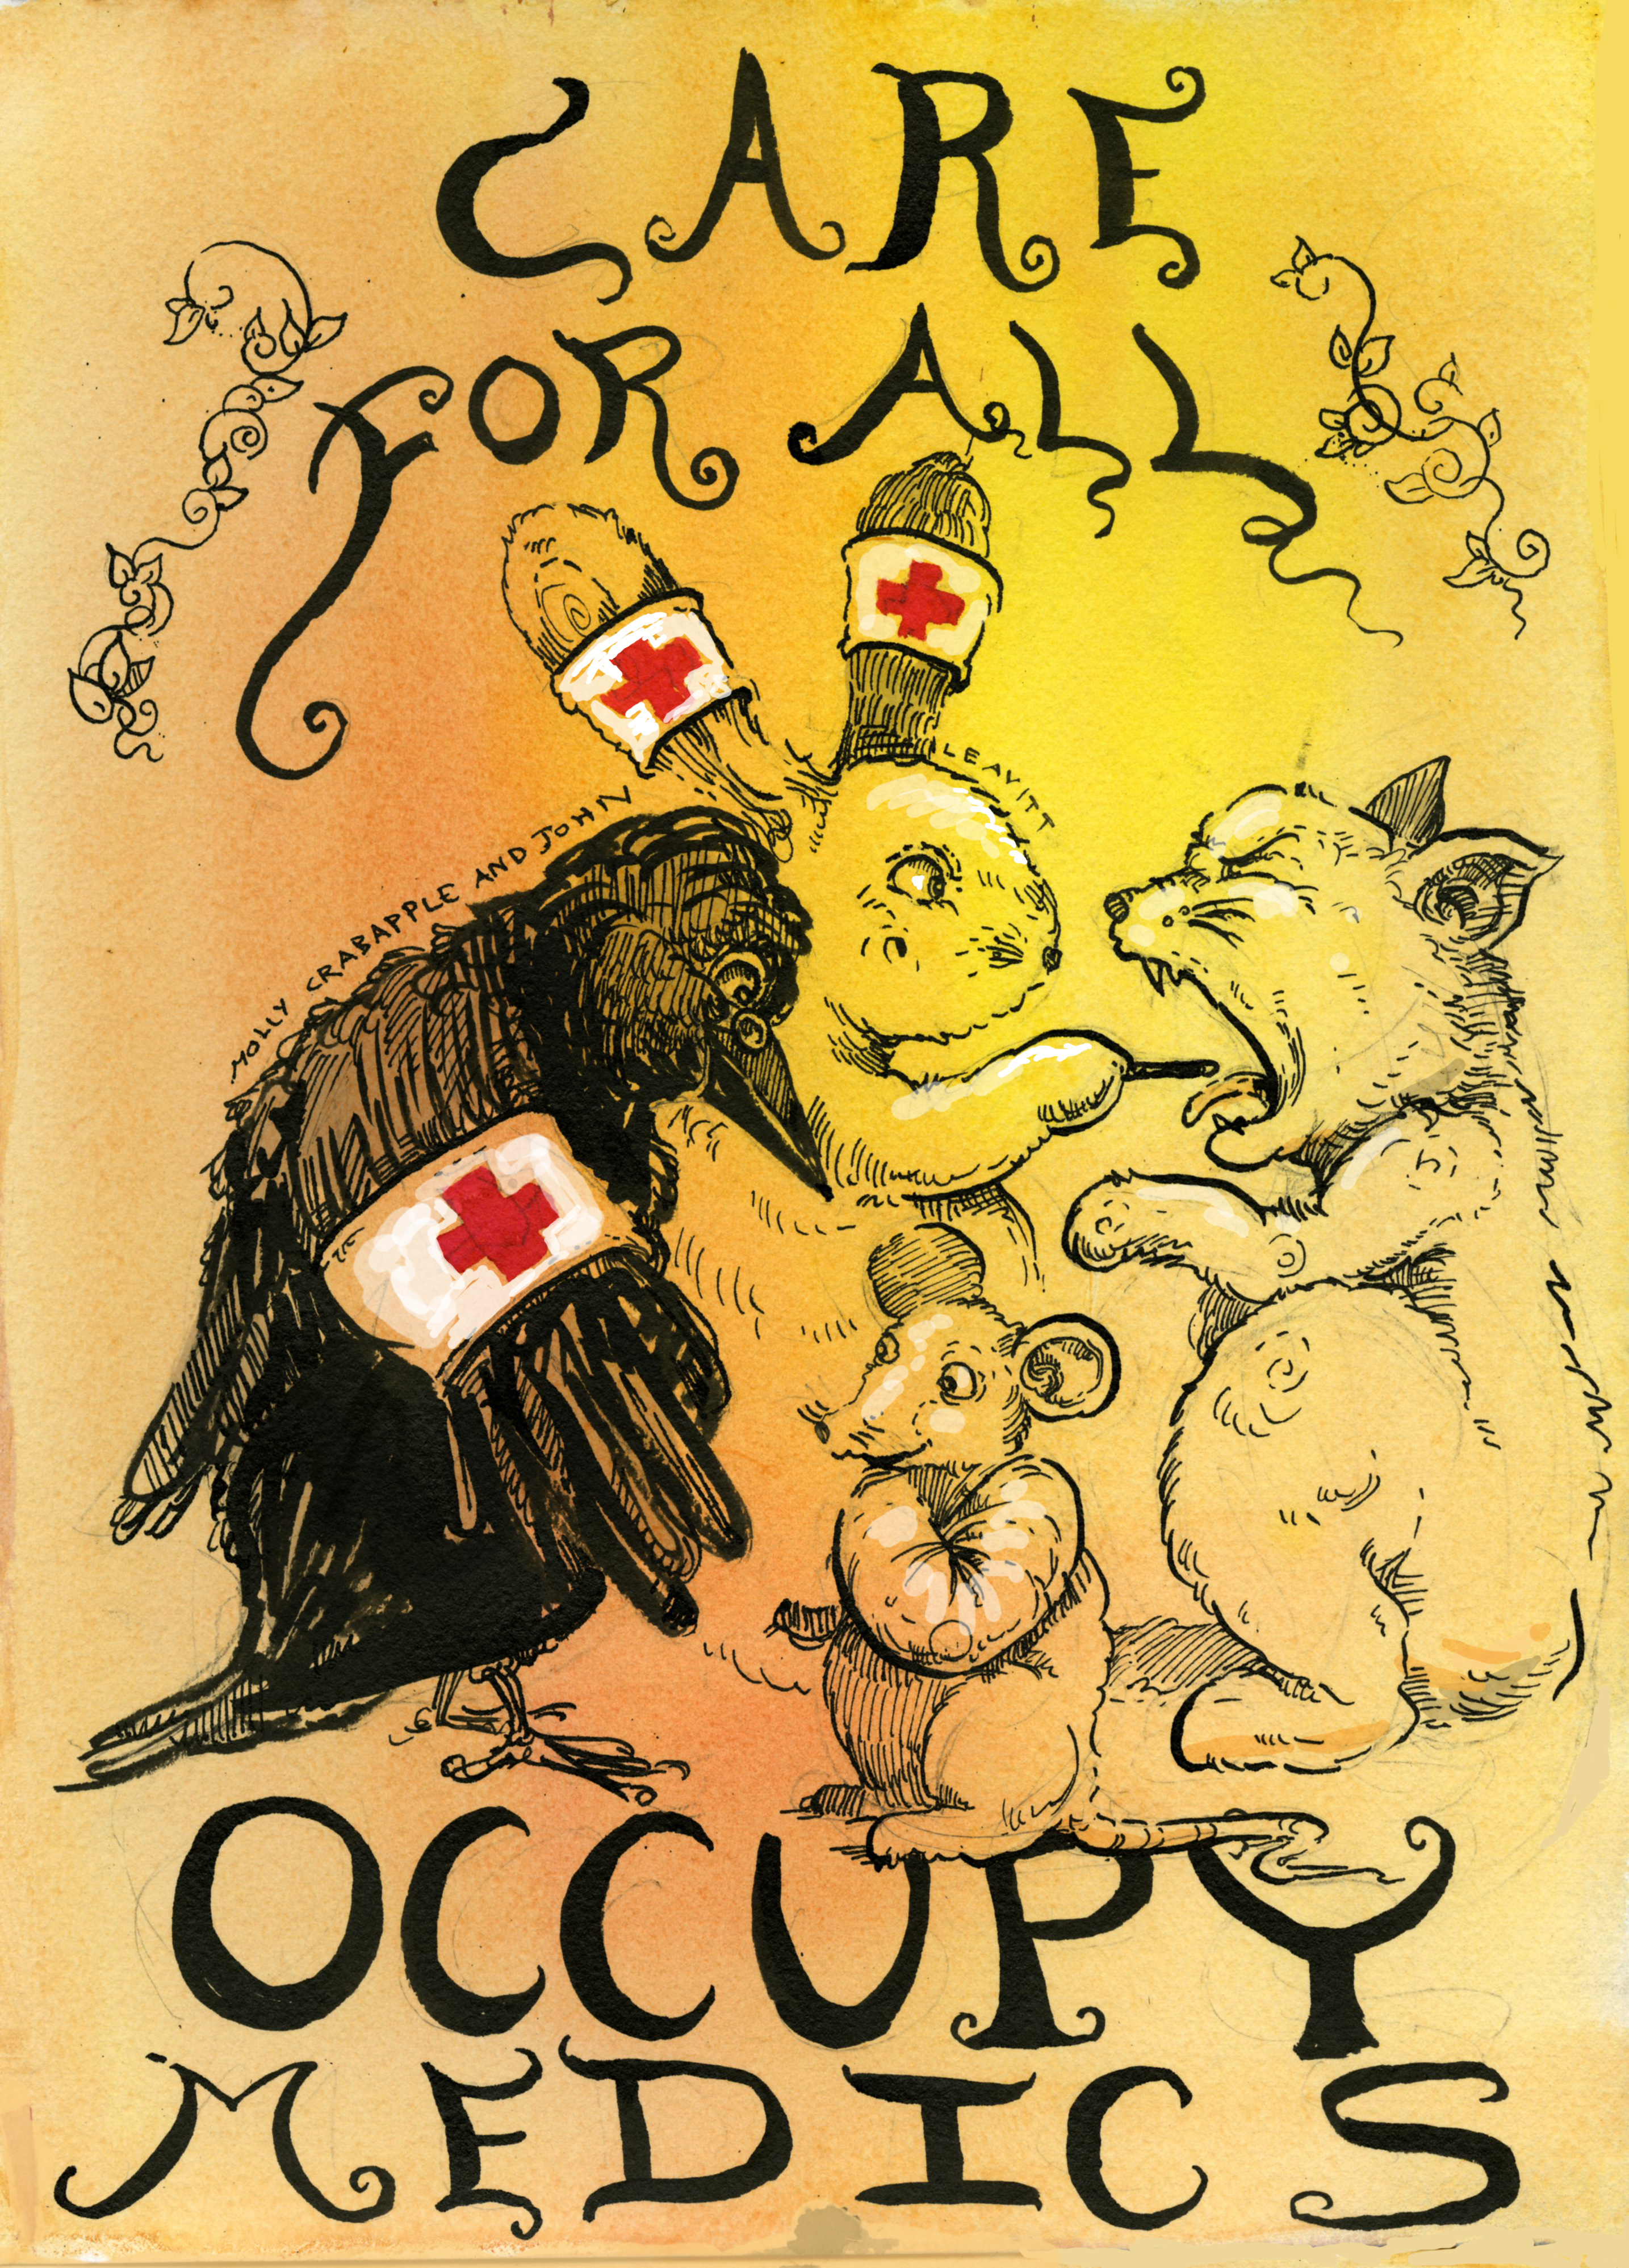 Occupy Wall Street Medics - The Art of Molly Crabapple